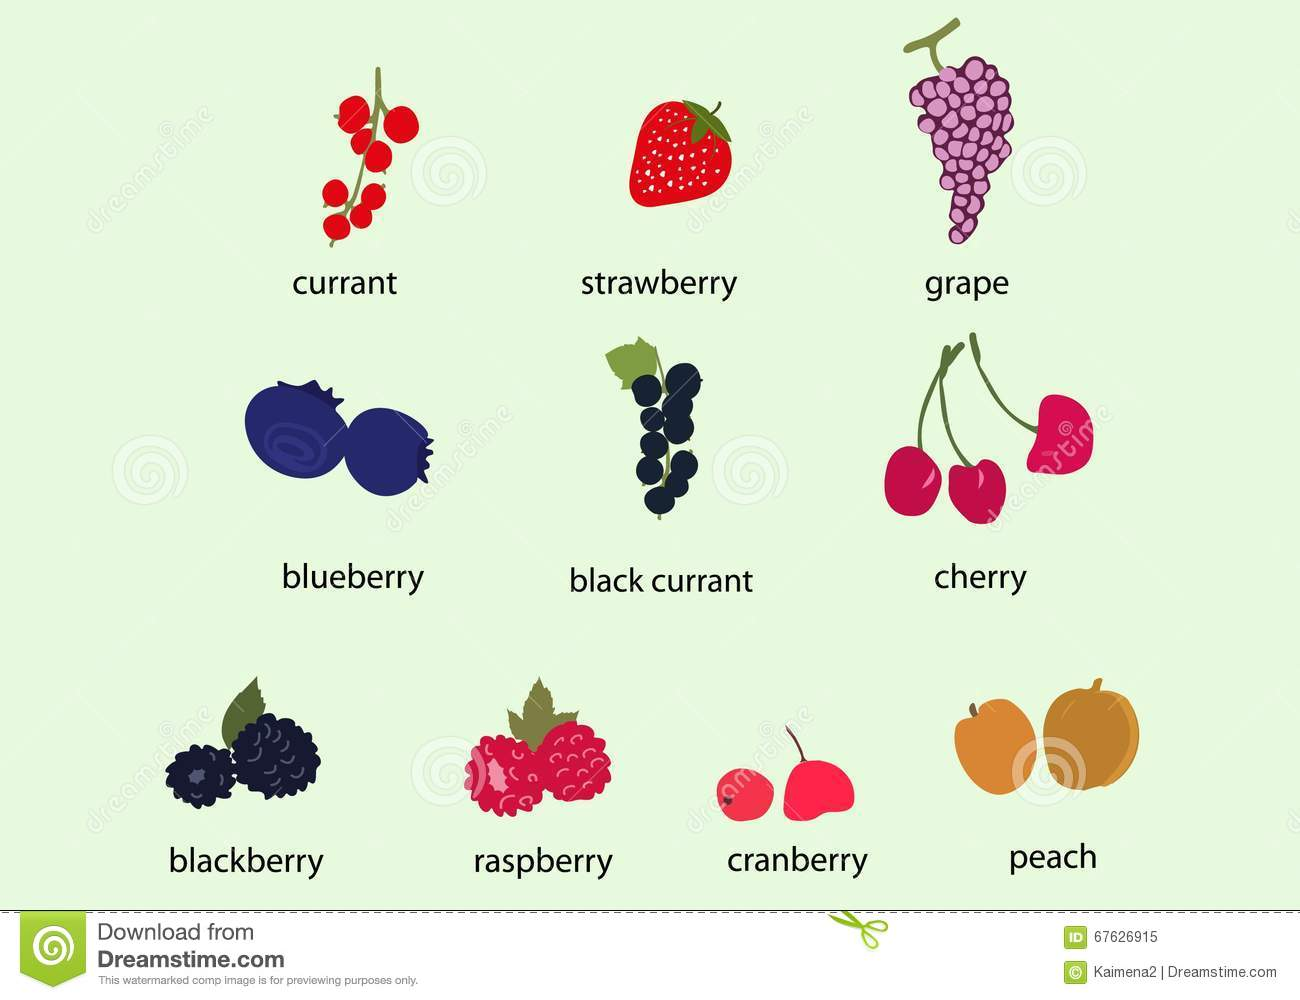 Berry clipart vector. Currant pencil and in